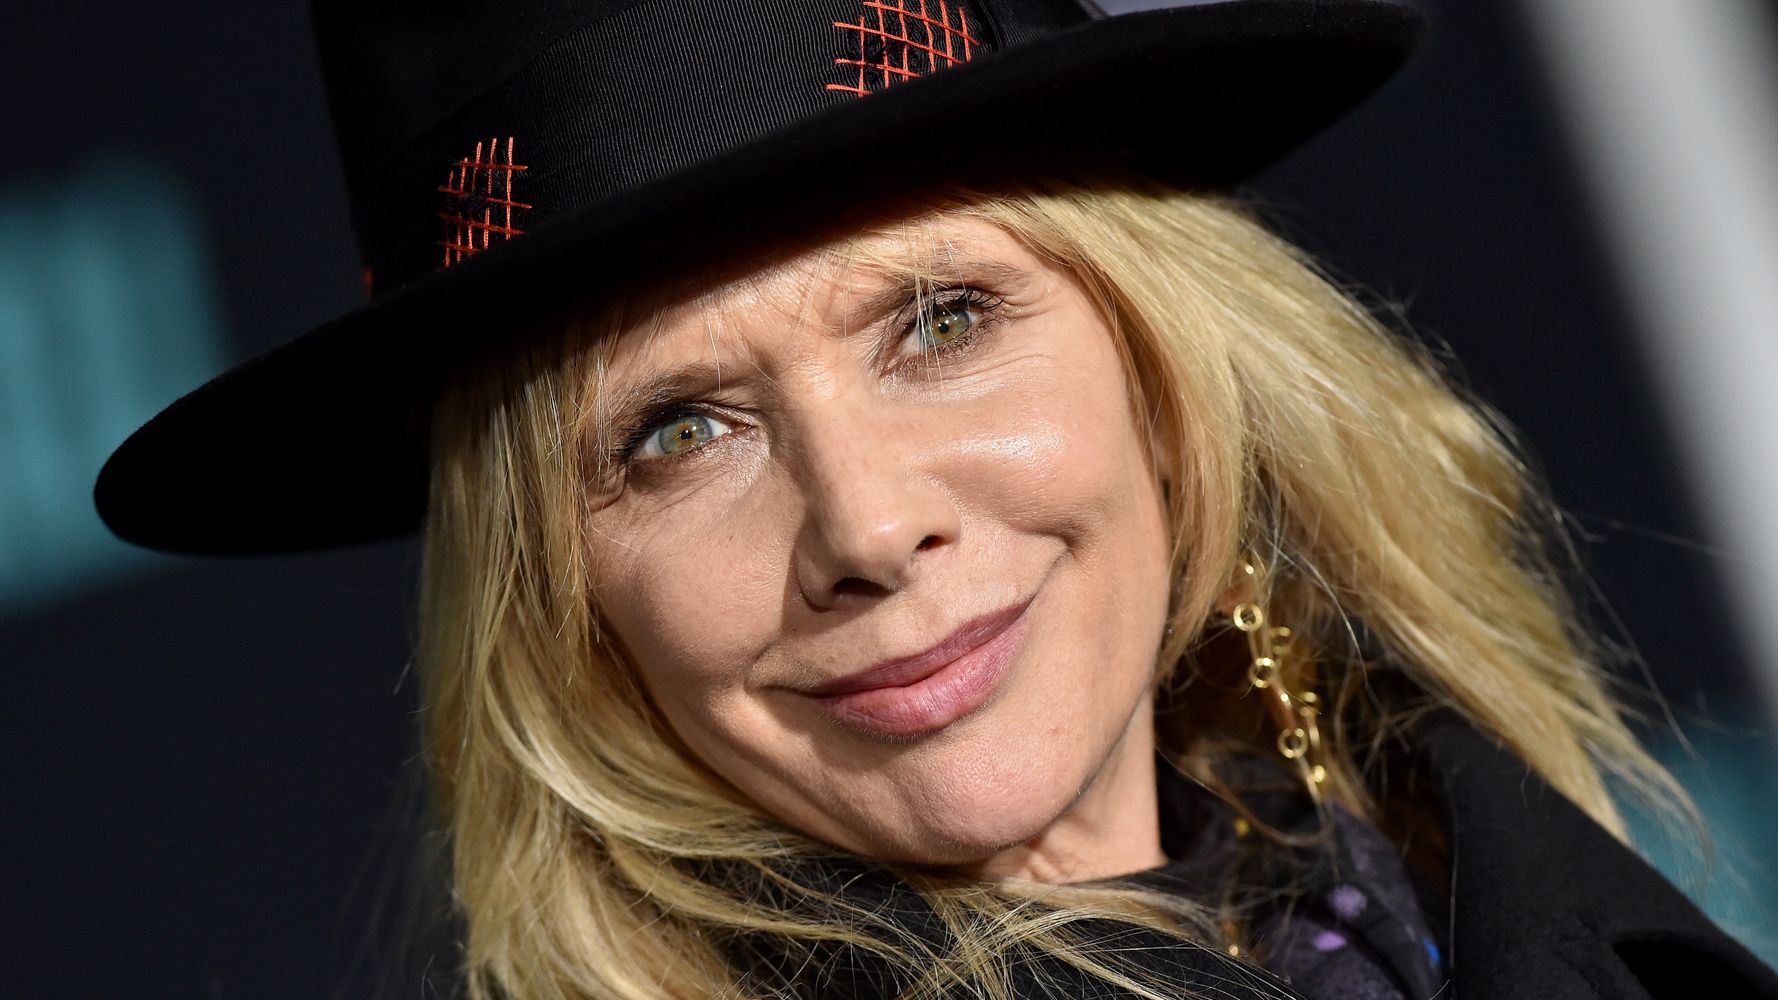 Rosanna Arquette On Losing Her 'Desperately Seeking Susan' Co-Star To Coronavirus